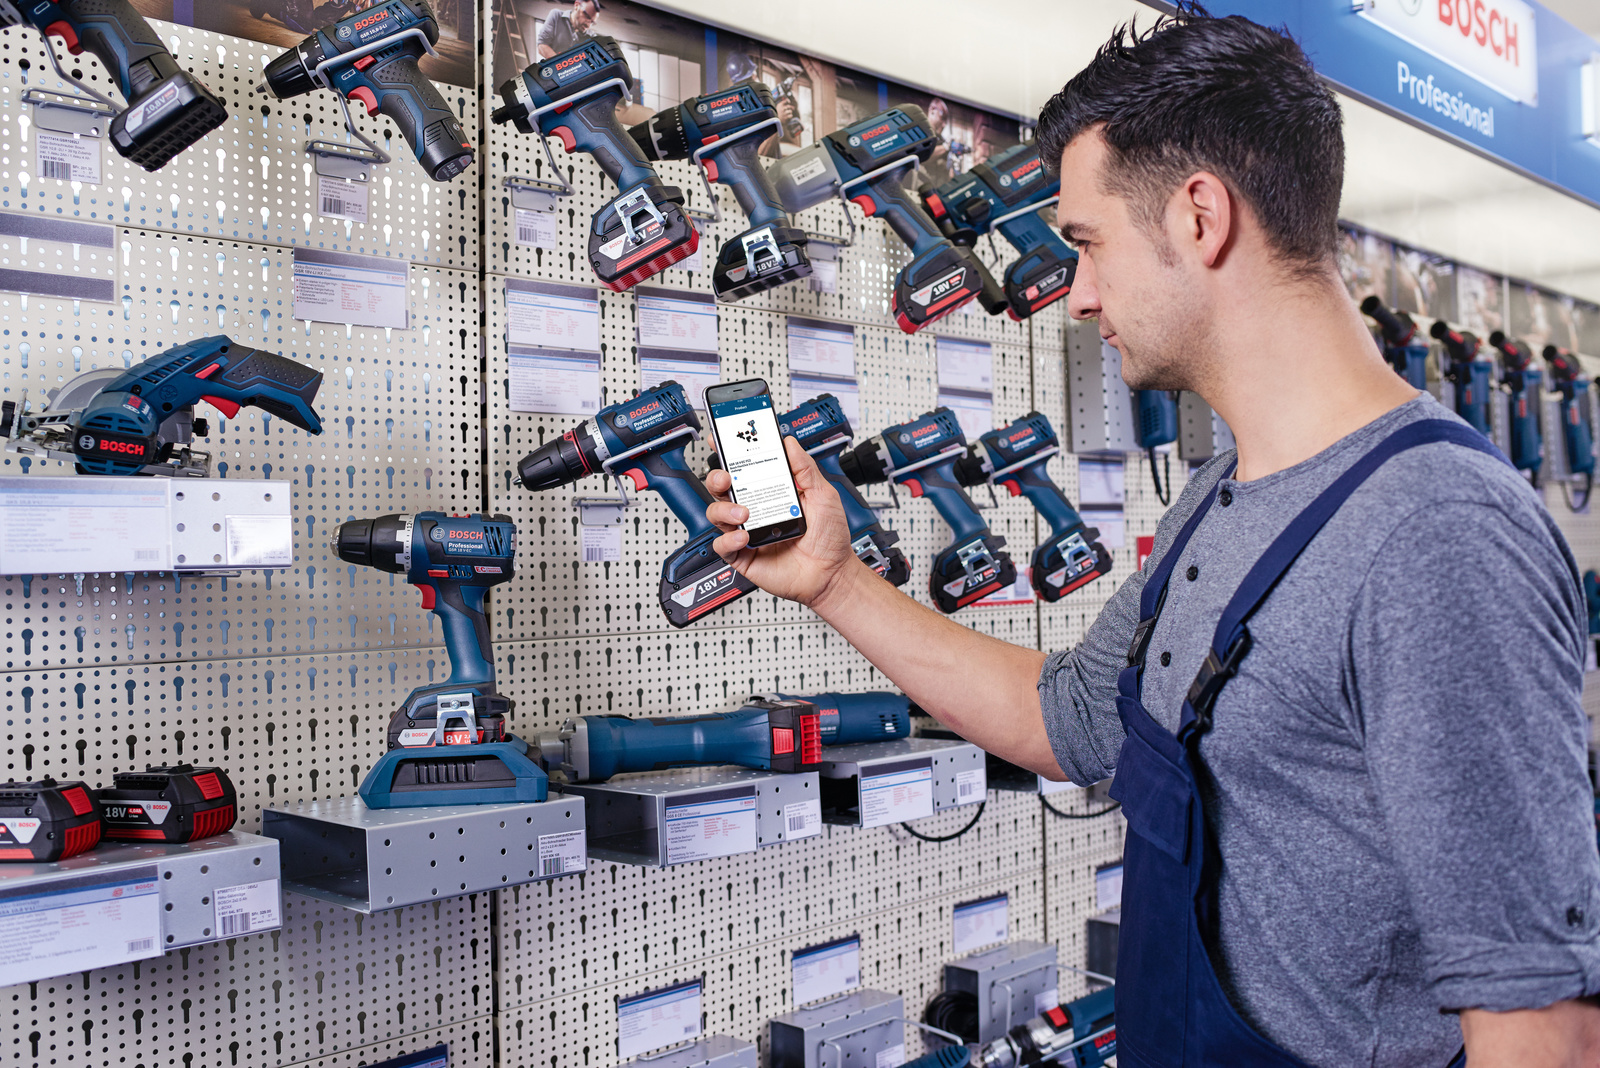 Connected power tools